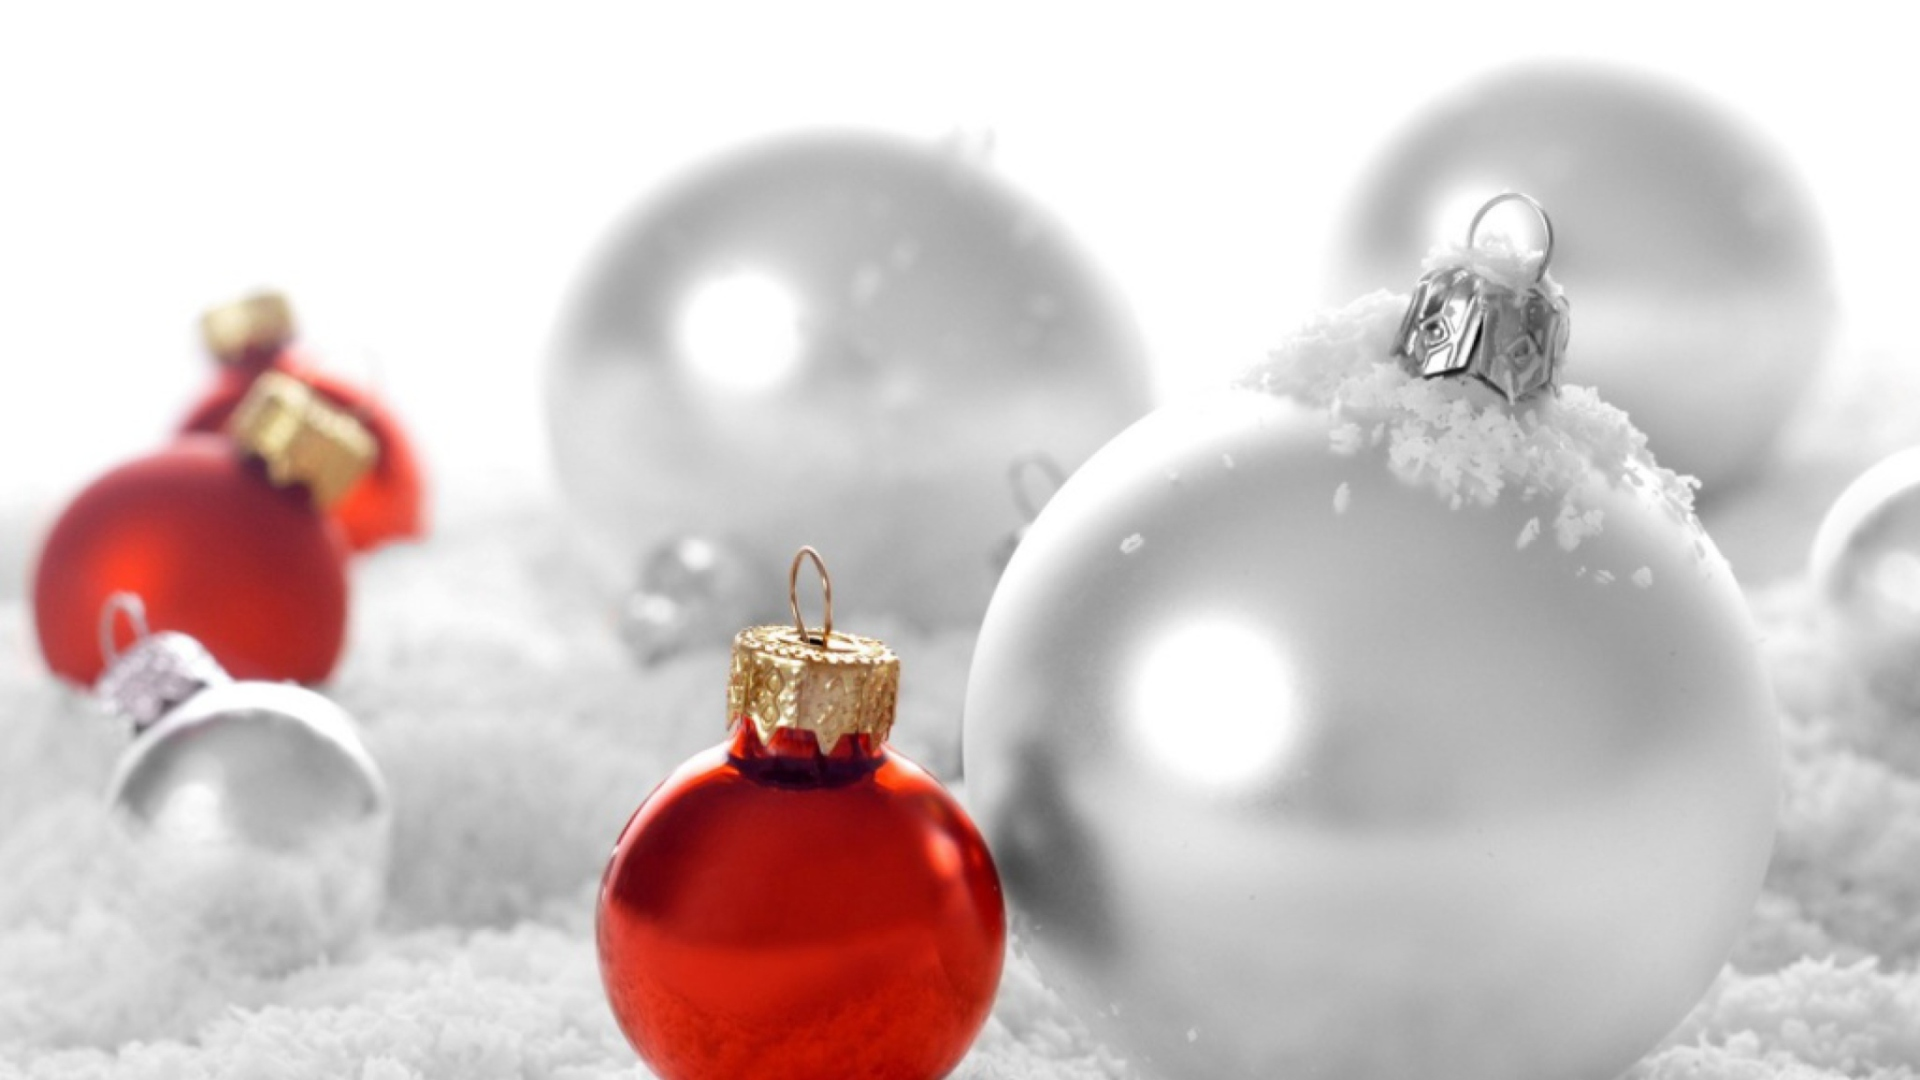 Christmas Decorations wallpaper 1920x1080